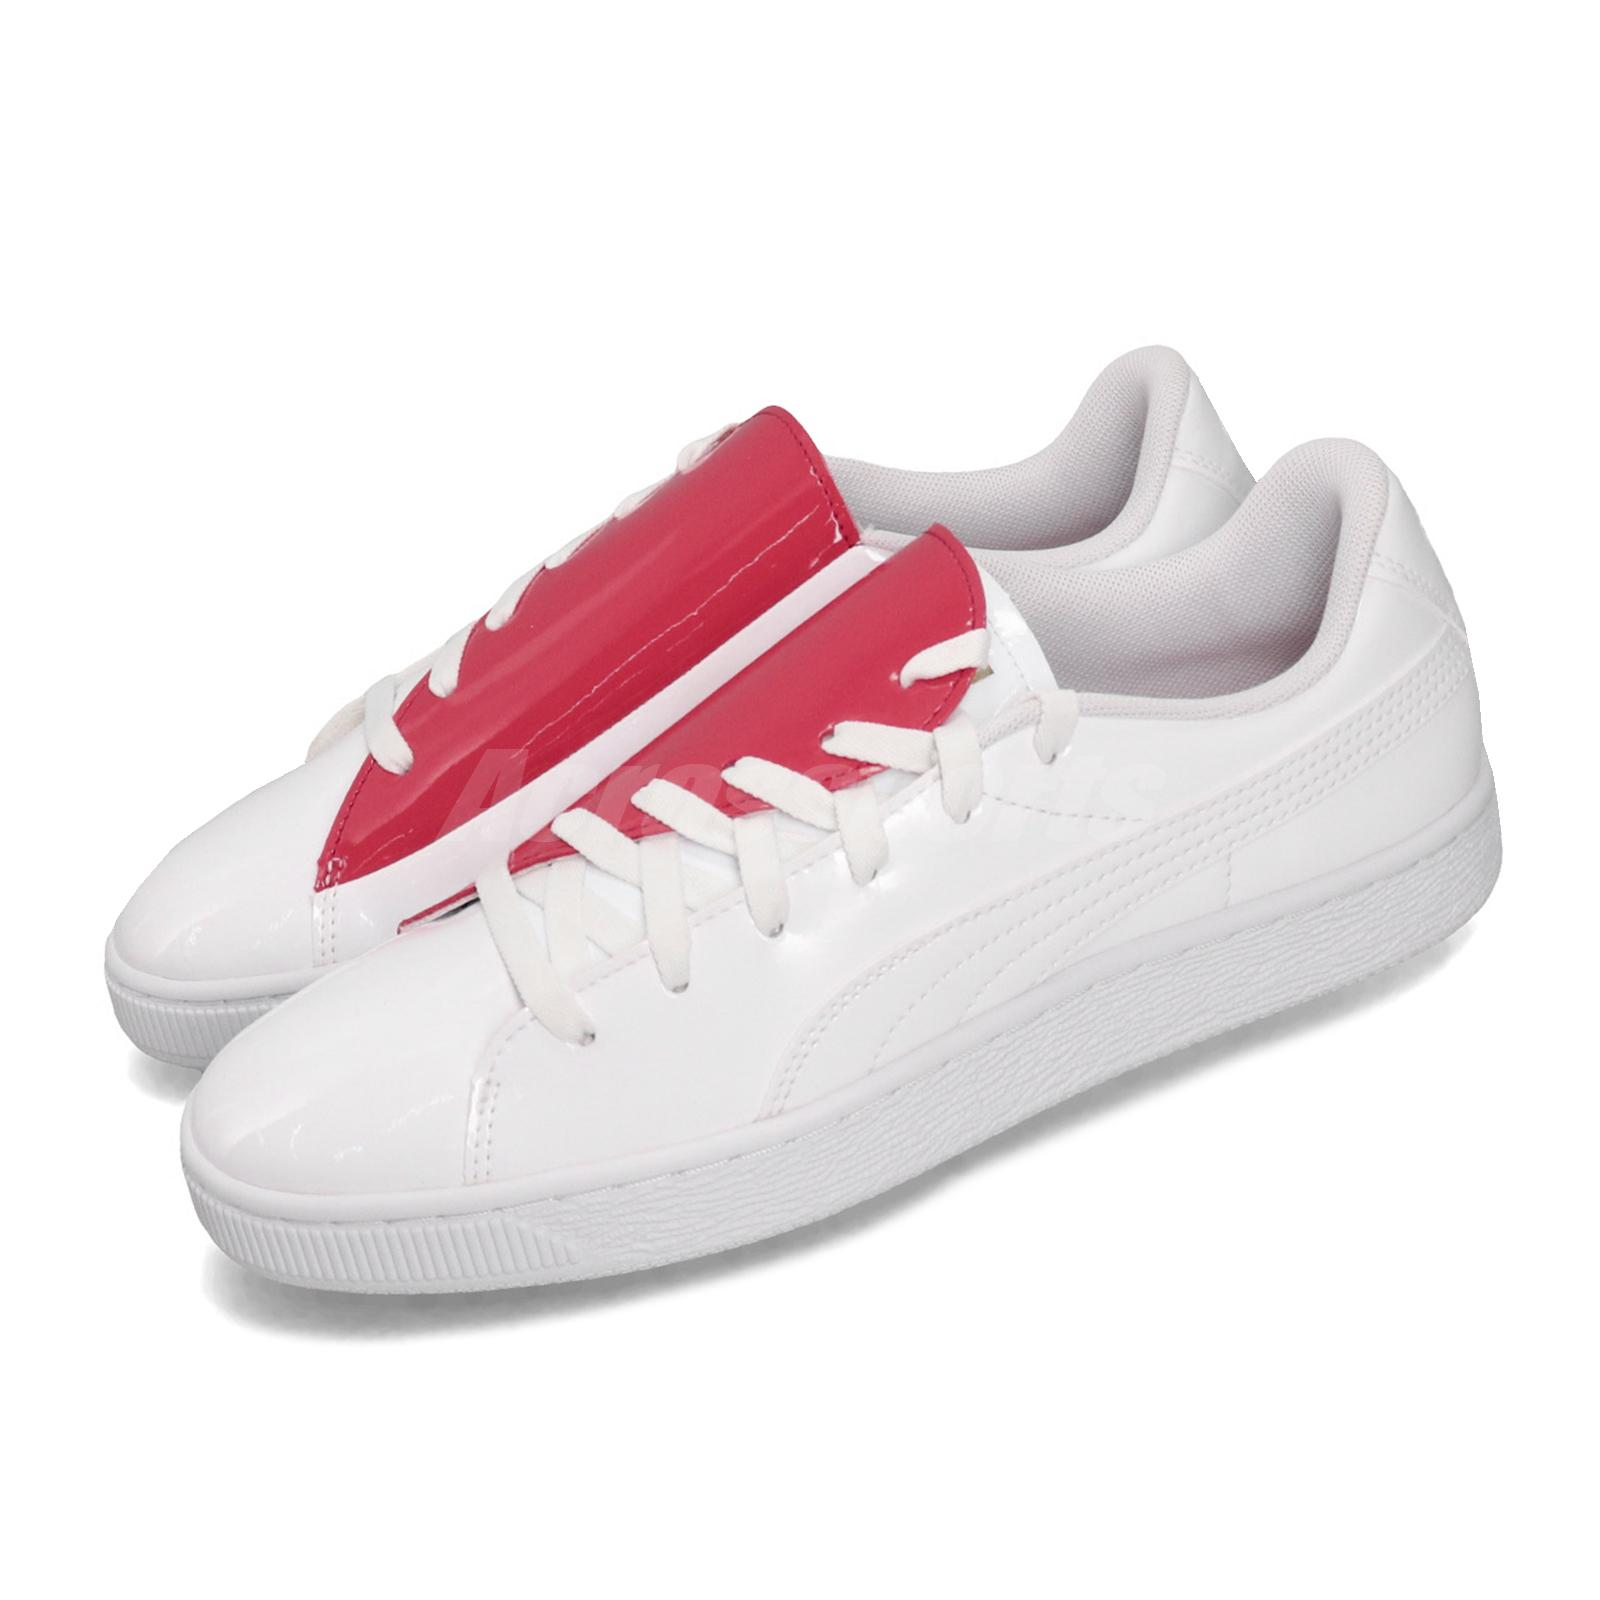 sale retailer cb05b d9df0 Details about Puma Basket Crush Wns White Red Heart Women Casual Shoes  Sneakers 369556-01